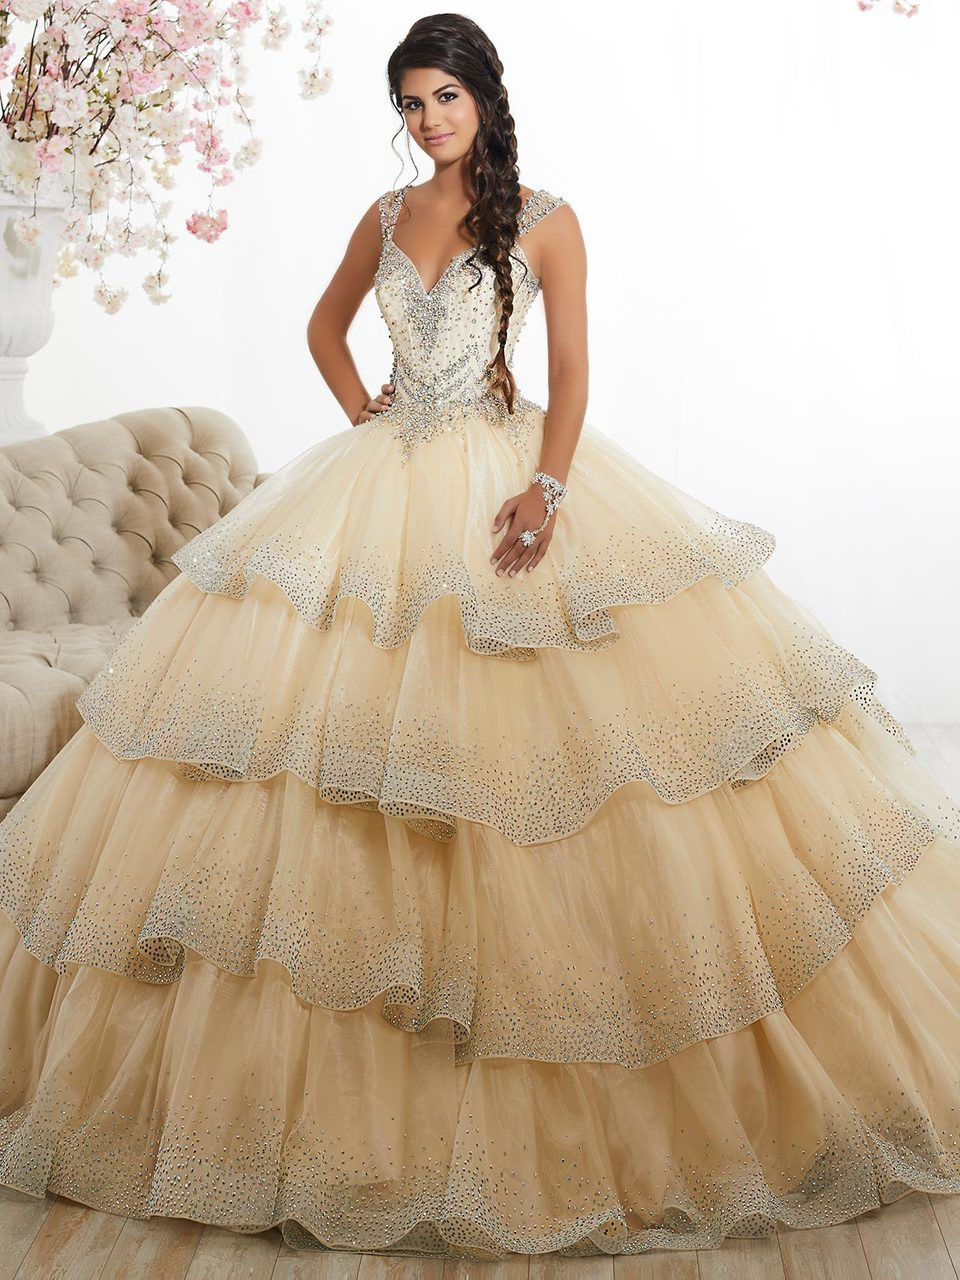 1a86f4ece42 Sweetheart Ball Gown Tiffany Quinceanera Dress 26880 ...